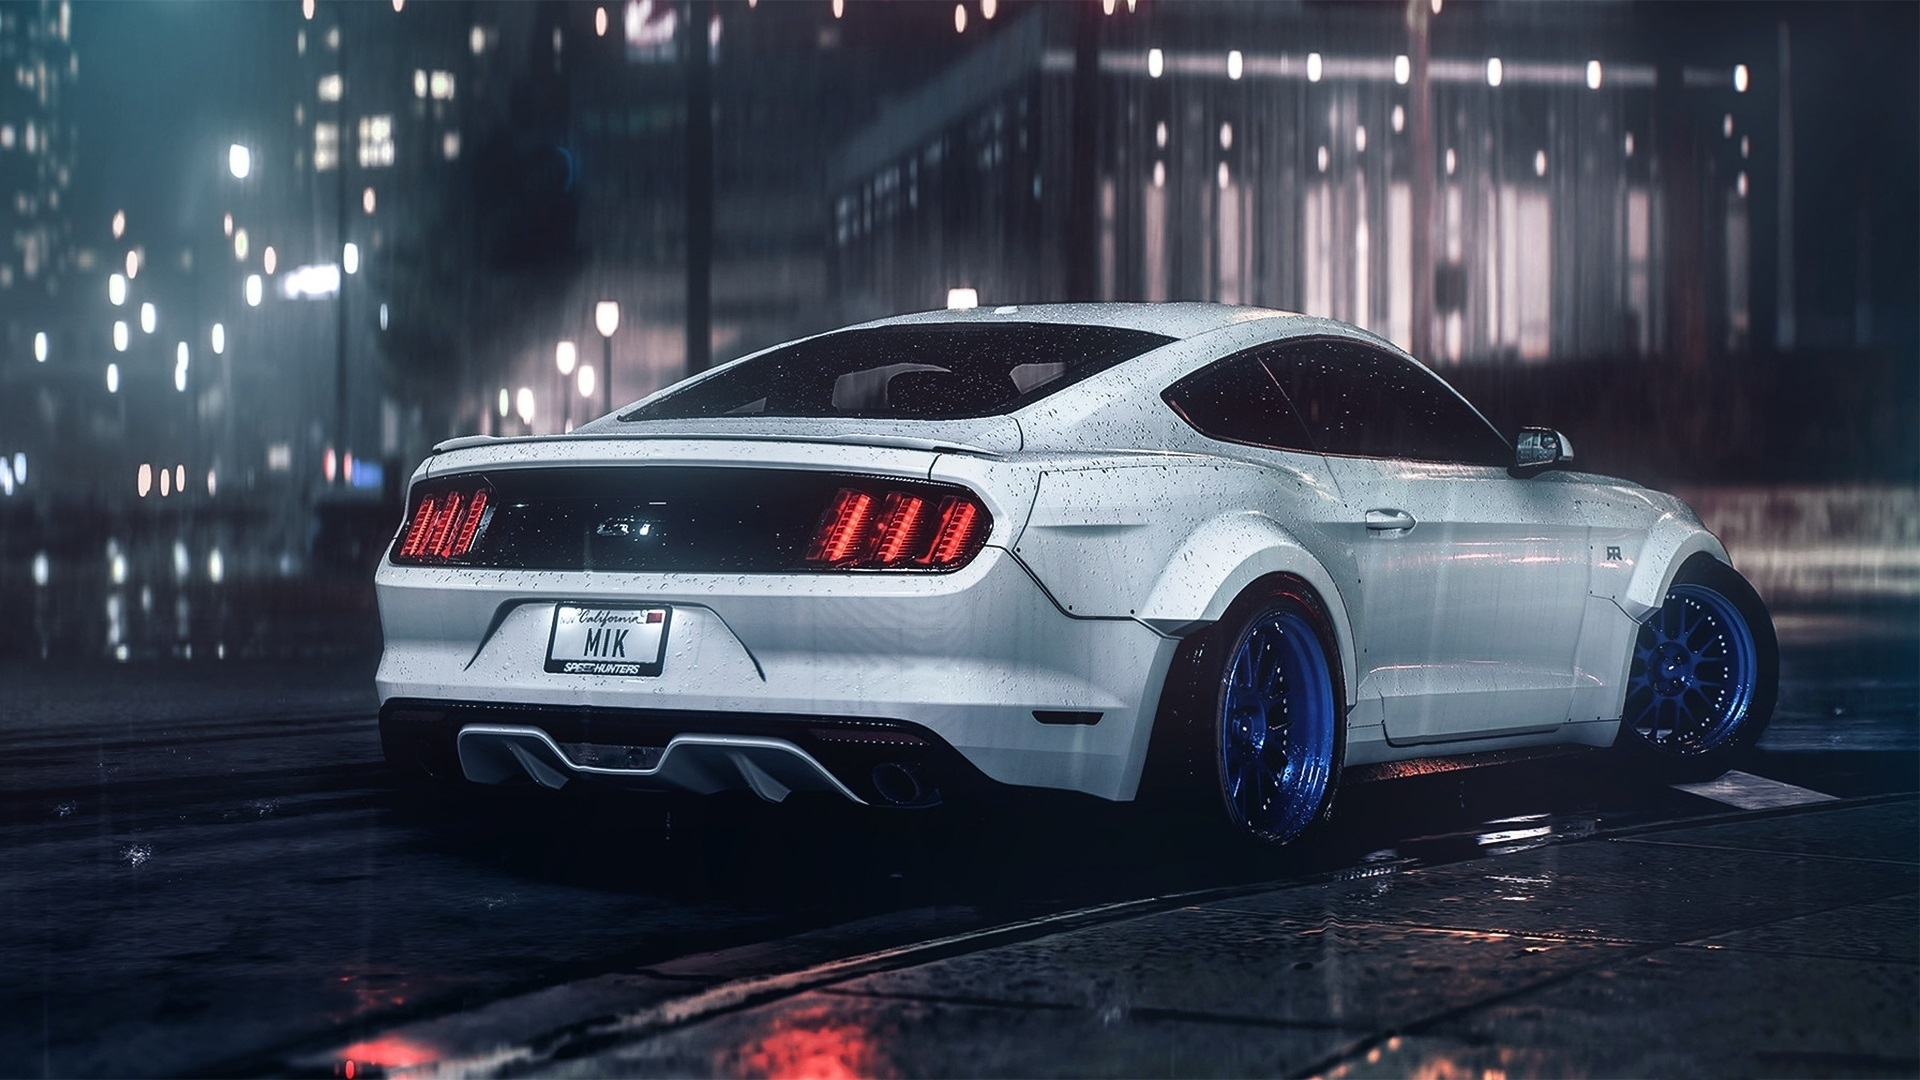 10 Best Ford Mustang Gt Wallpaper FULL HD 1920×1080 For PC Background